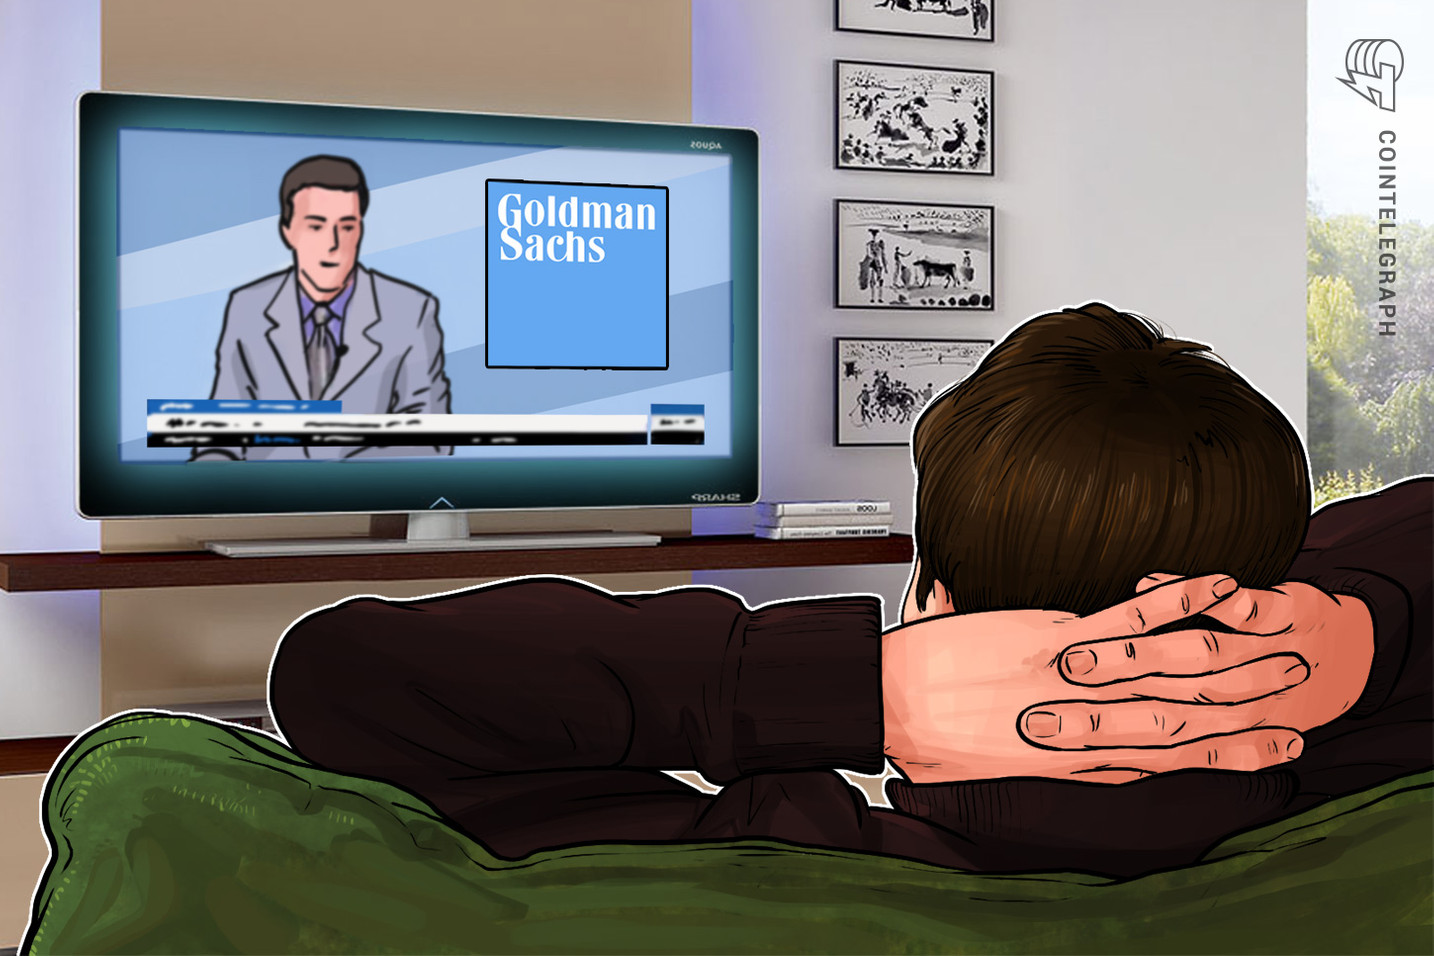 Goldman Sachs Hires Crypto Trader As VP Of Digital Assets 'In Response To Client Interest'